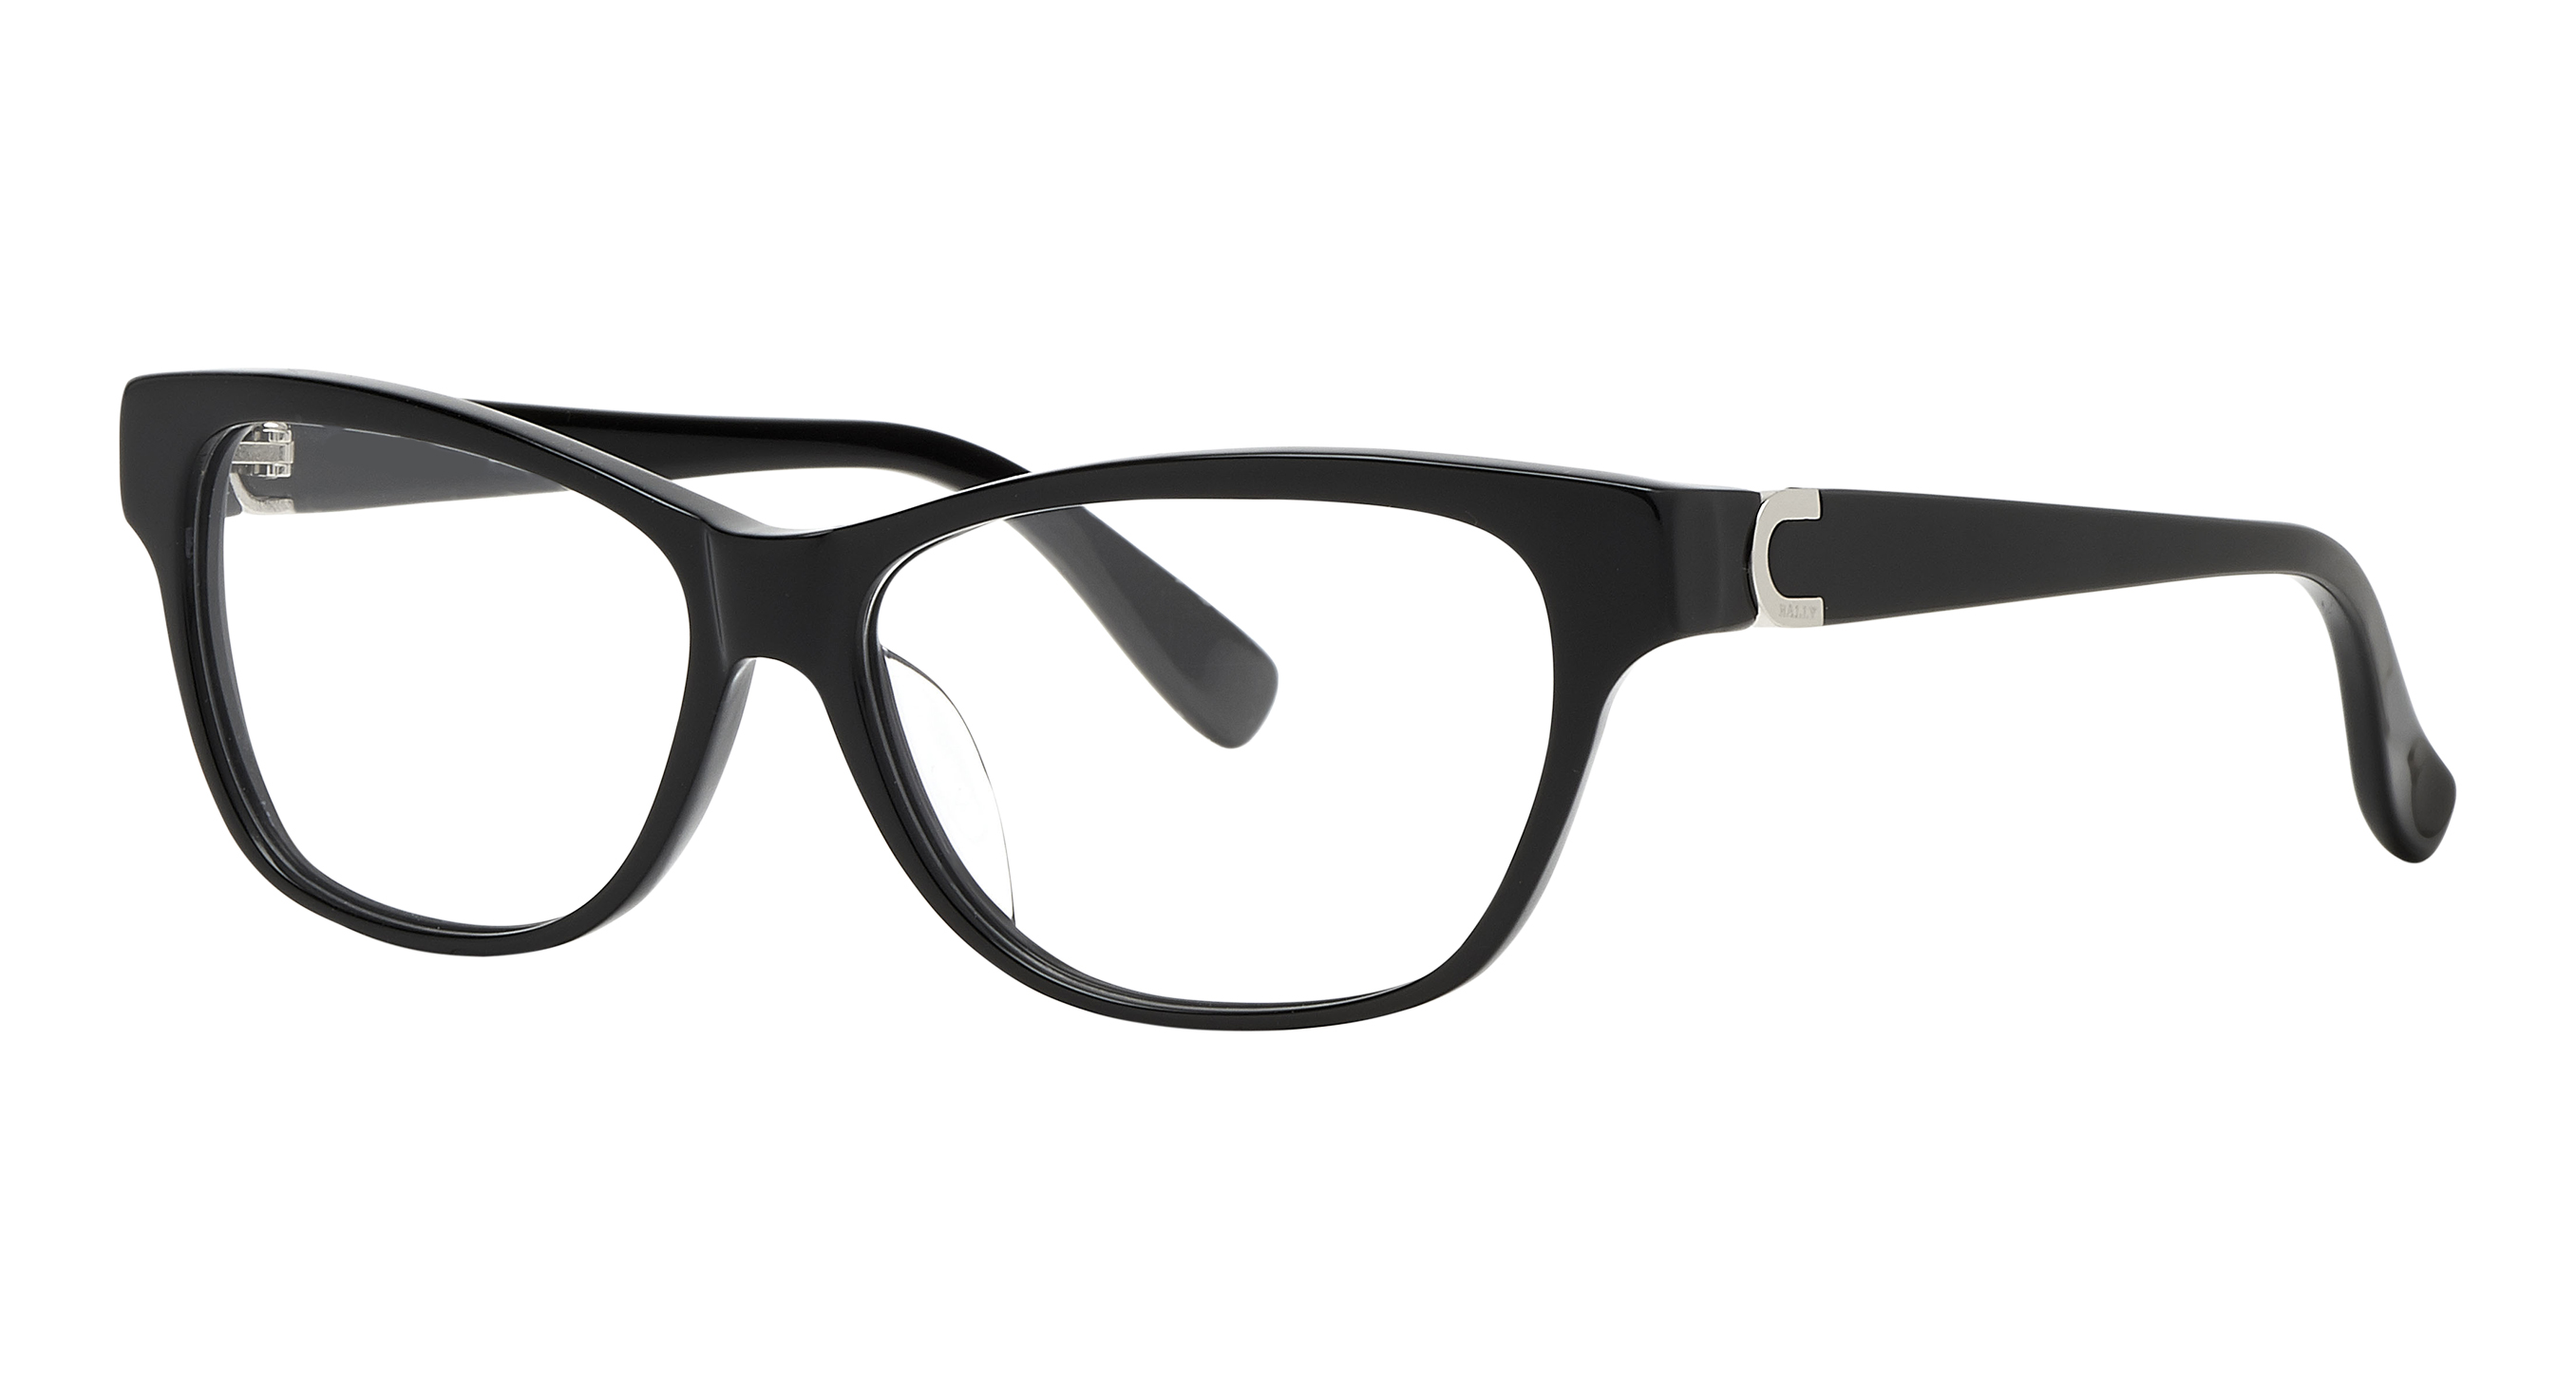 Ray Ban Eyeglasses At Walmart « One More Soul